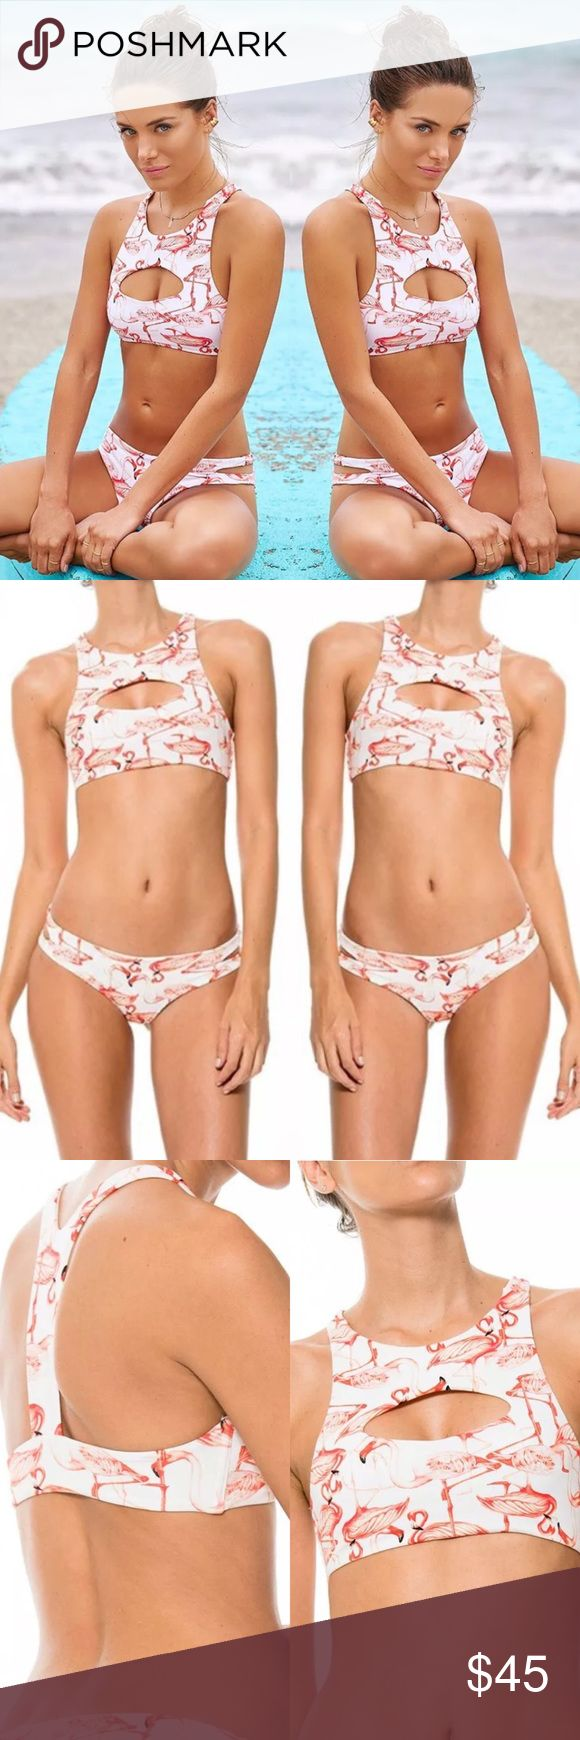 SEXY PINK FLAMINGO FESTIVAL CHEEKI BEACH BIKINI S Adorable pink flamingo print bikini with cheeky bottoms and crop top cut out style top. Really cute to wear to the beach with cut off jeans or to a fun festival. Size small. Brand new. Never worn. No tags. *NOT NASTY GAL POSTED FOR VIEWS. More modeling pics coming soon. Comment below to be tagged when new photos are up. Nasty Gal Swim Bikinis